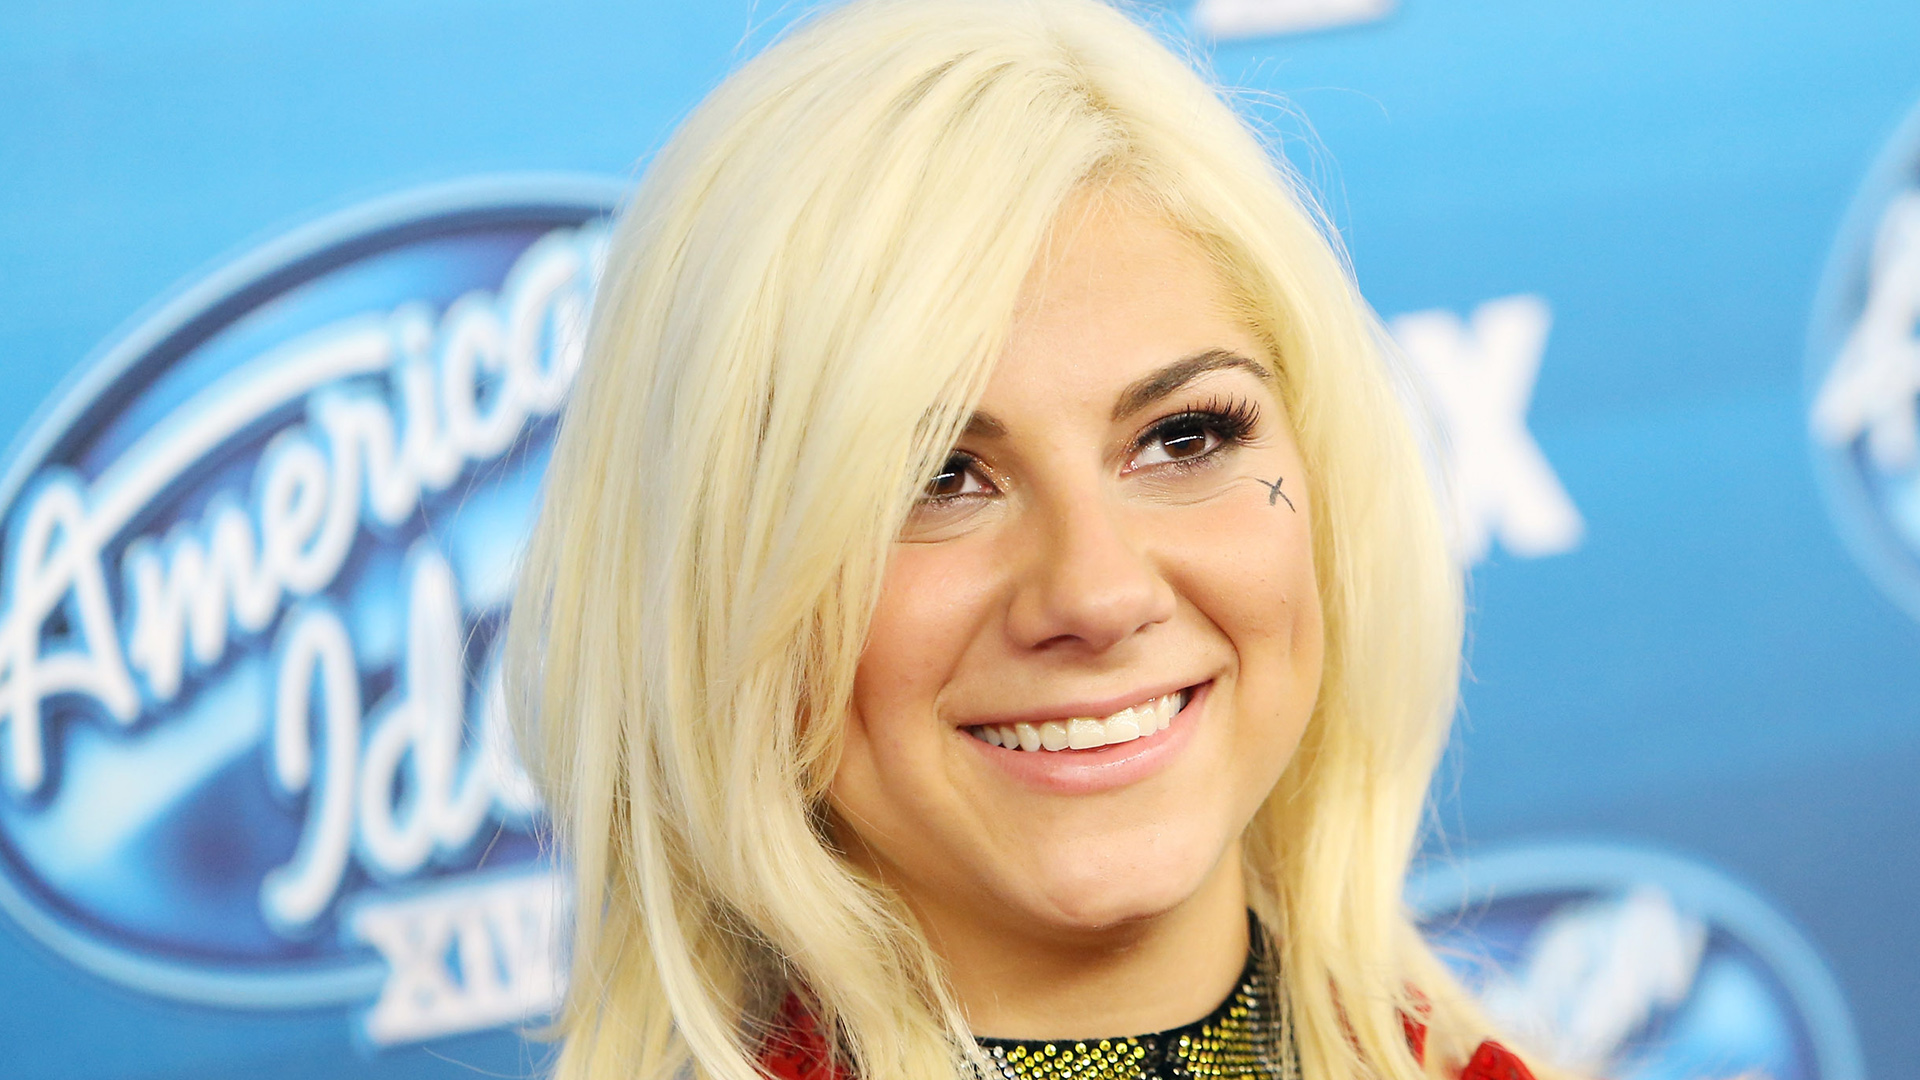 Inside American Idol Star Jax's Cancer Battle: 'We Thought It Was a Sinus Infection'